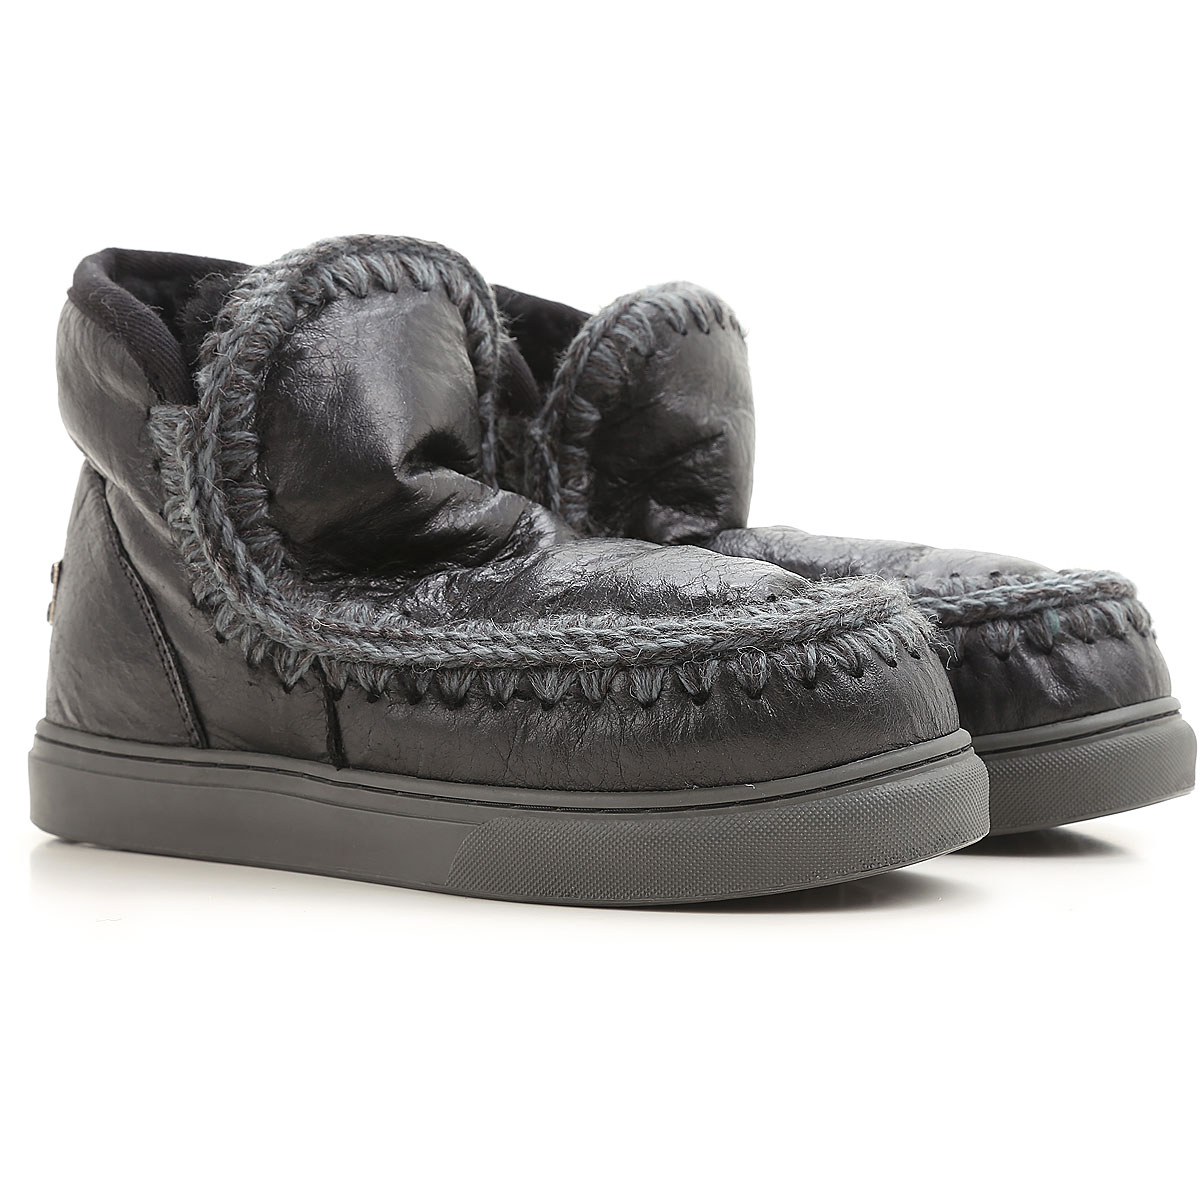 Image of Mou Boots for Women, Booties, Black, Leather, 2017, EUR 36 - UK 3 - USA 5.5 EUR 37 - UK 4 - USA 6.5 EUR 39 - UK 6 - USA 8.5 EUR 40 - UK 7 - USA 9.5